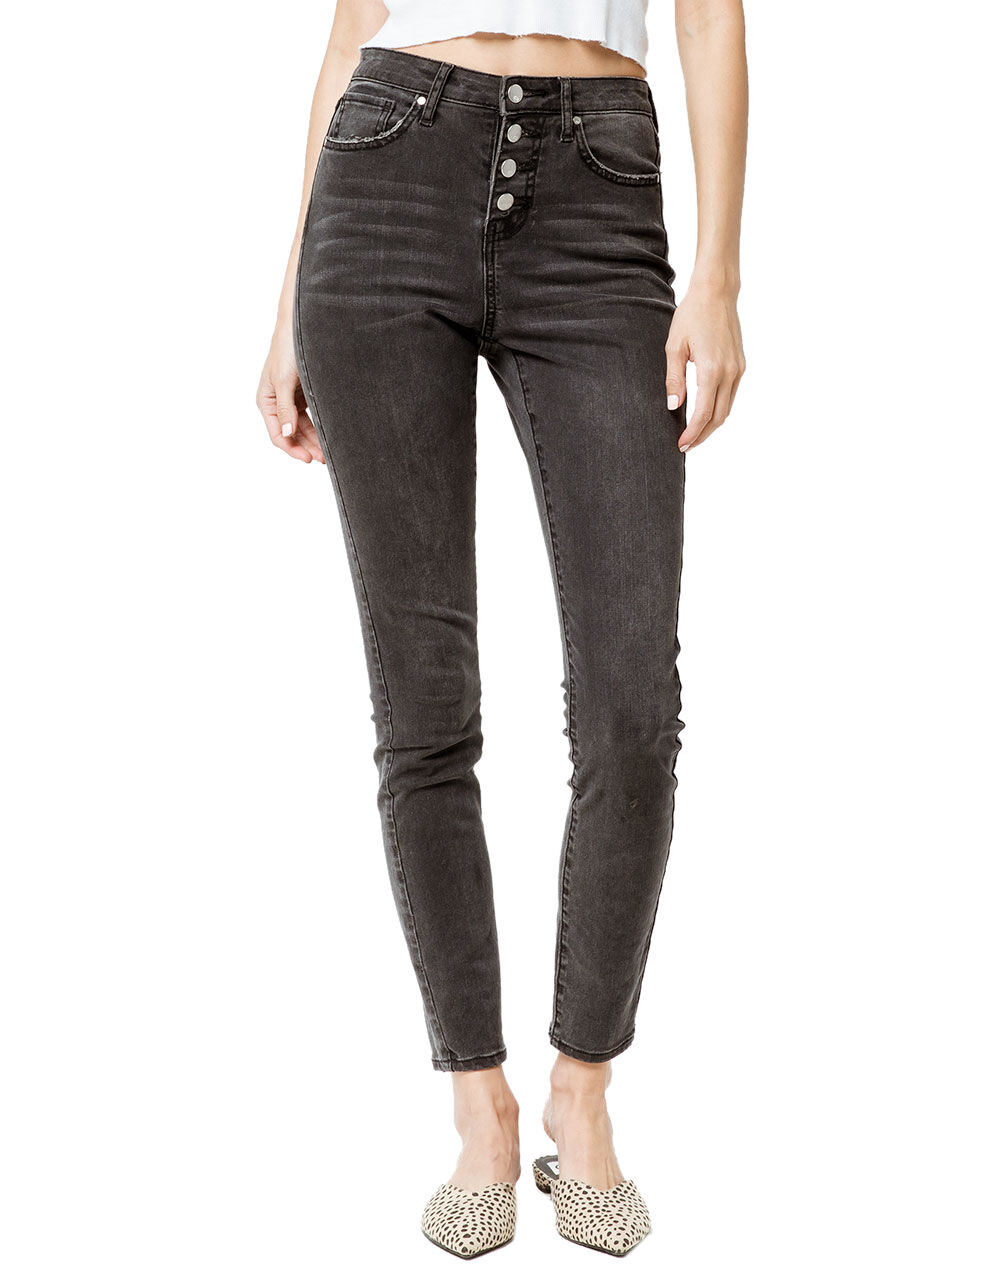 RSQ EXPOSED BUTTON MANHATTAN HIGH RISE SKINNY JEANS